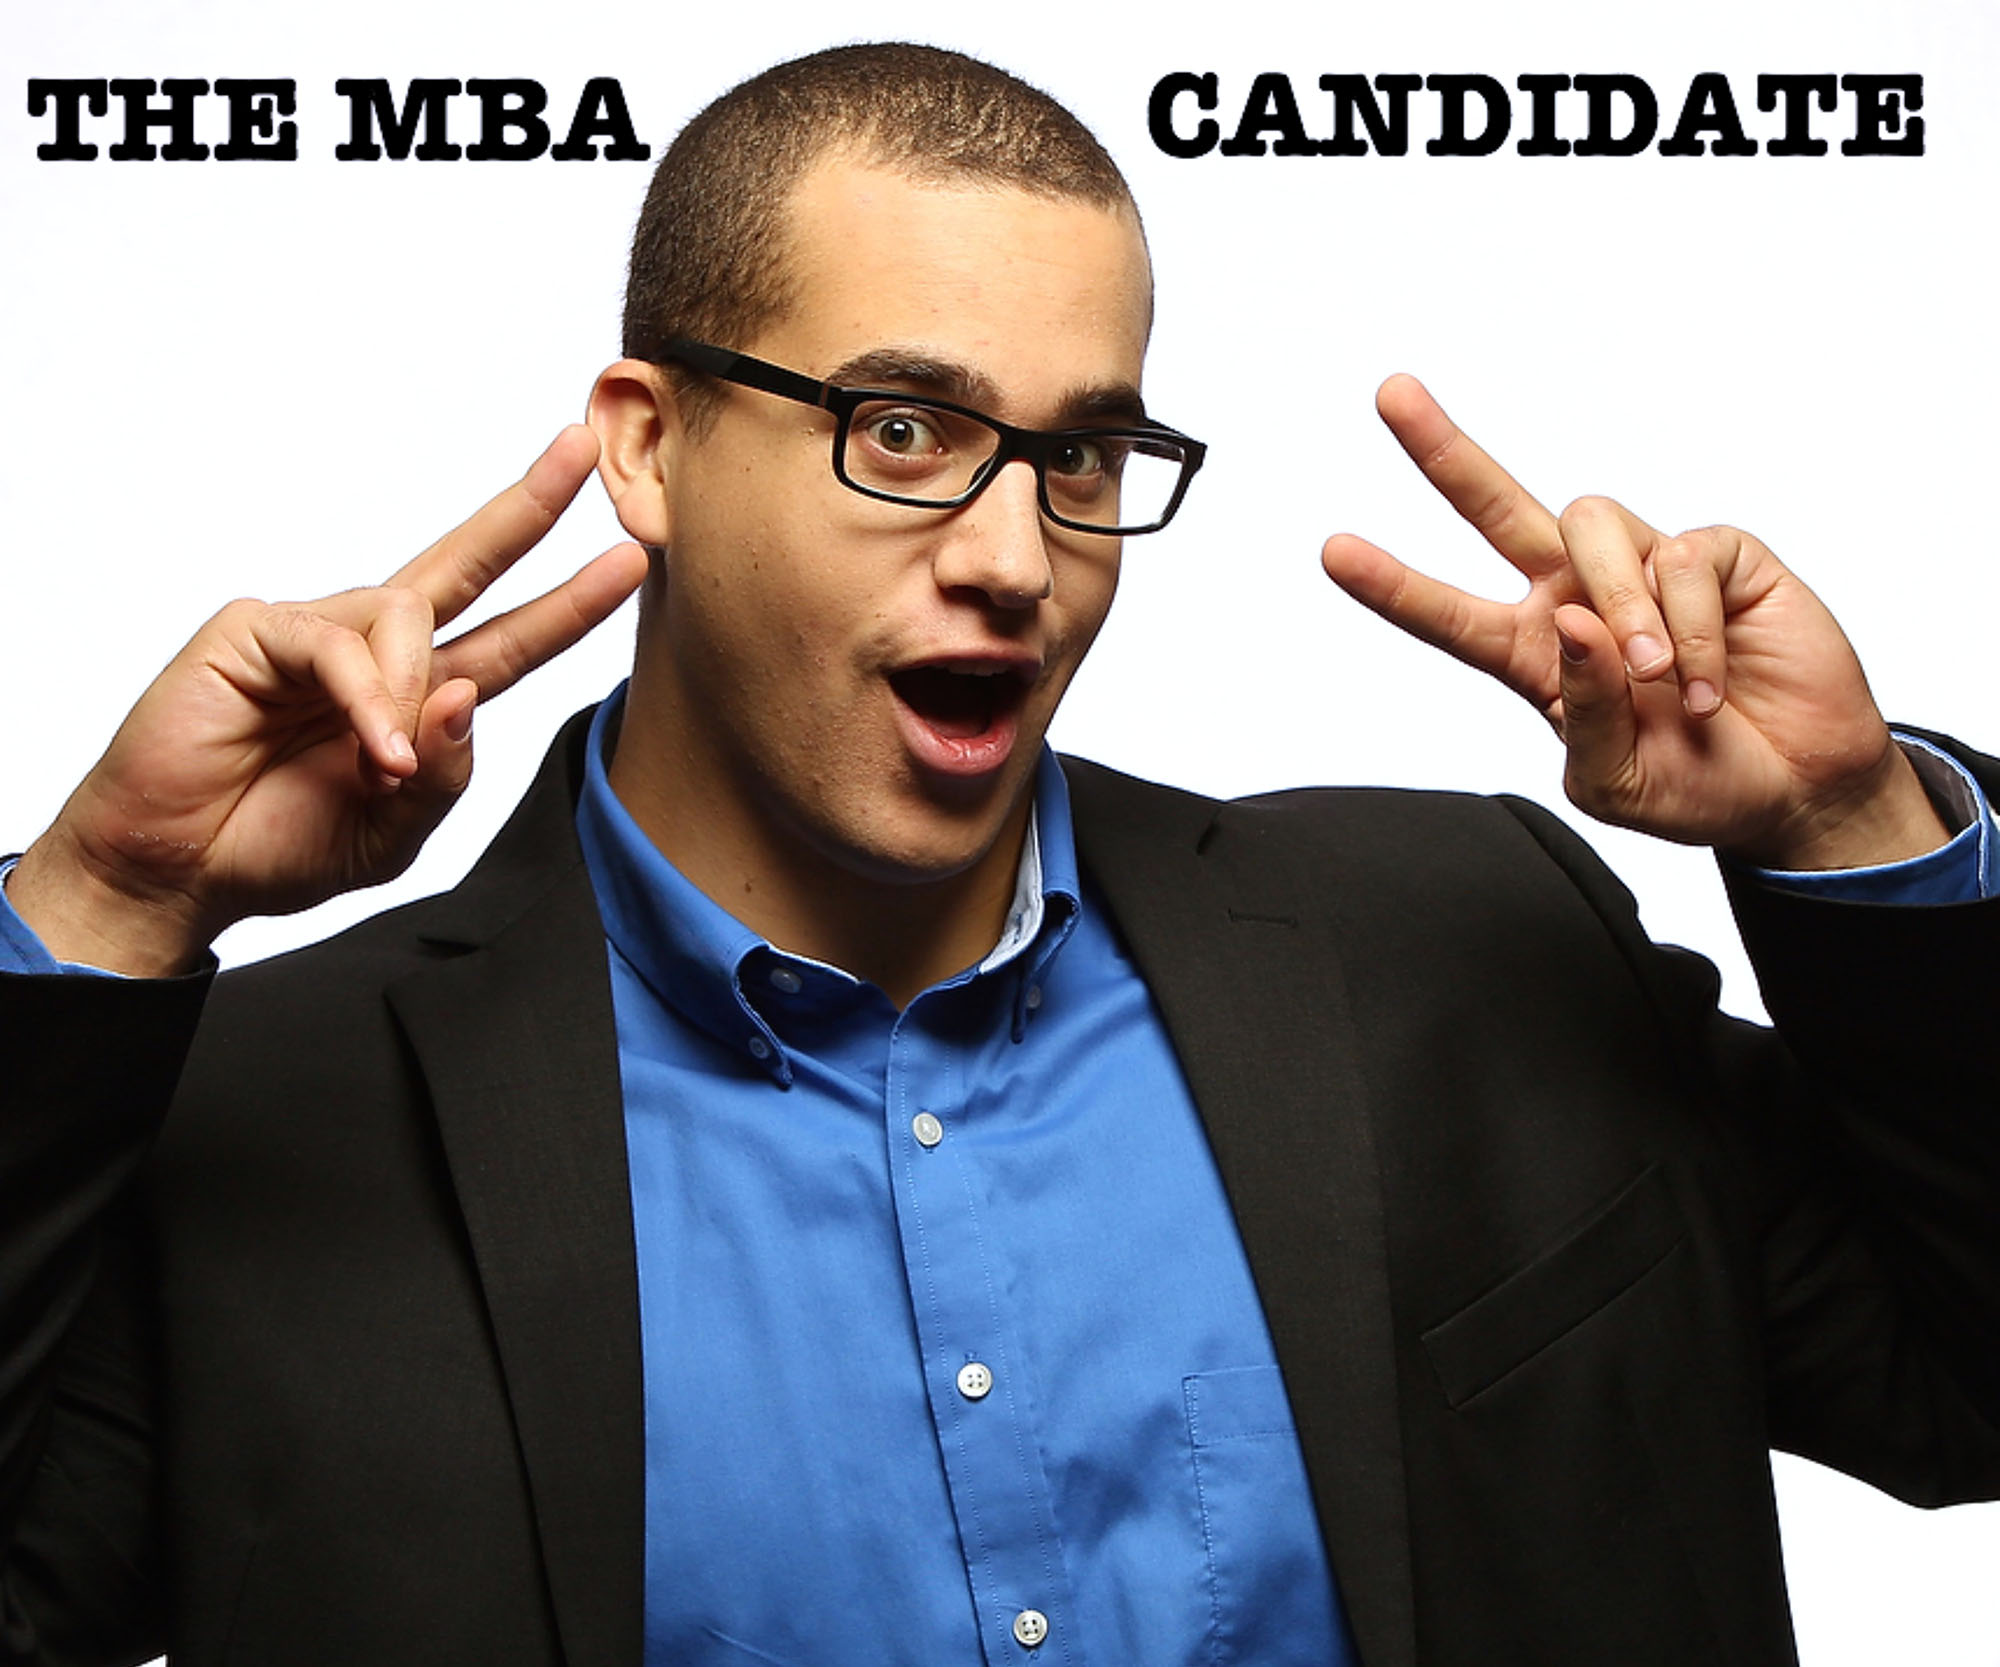 The MBA Candidate